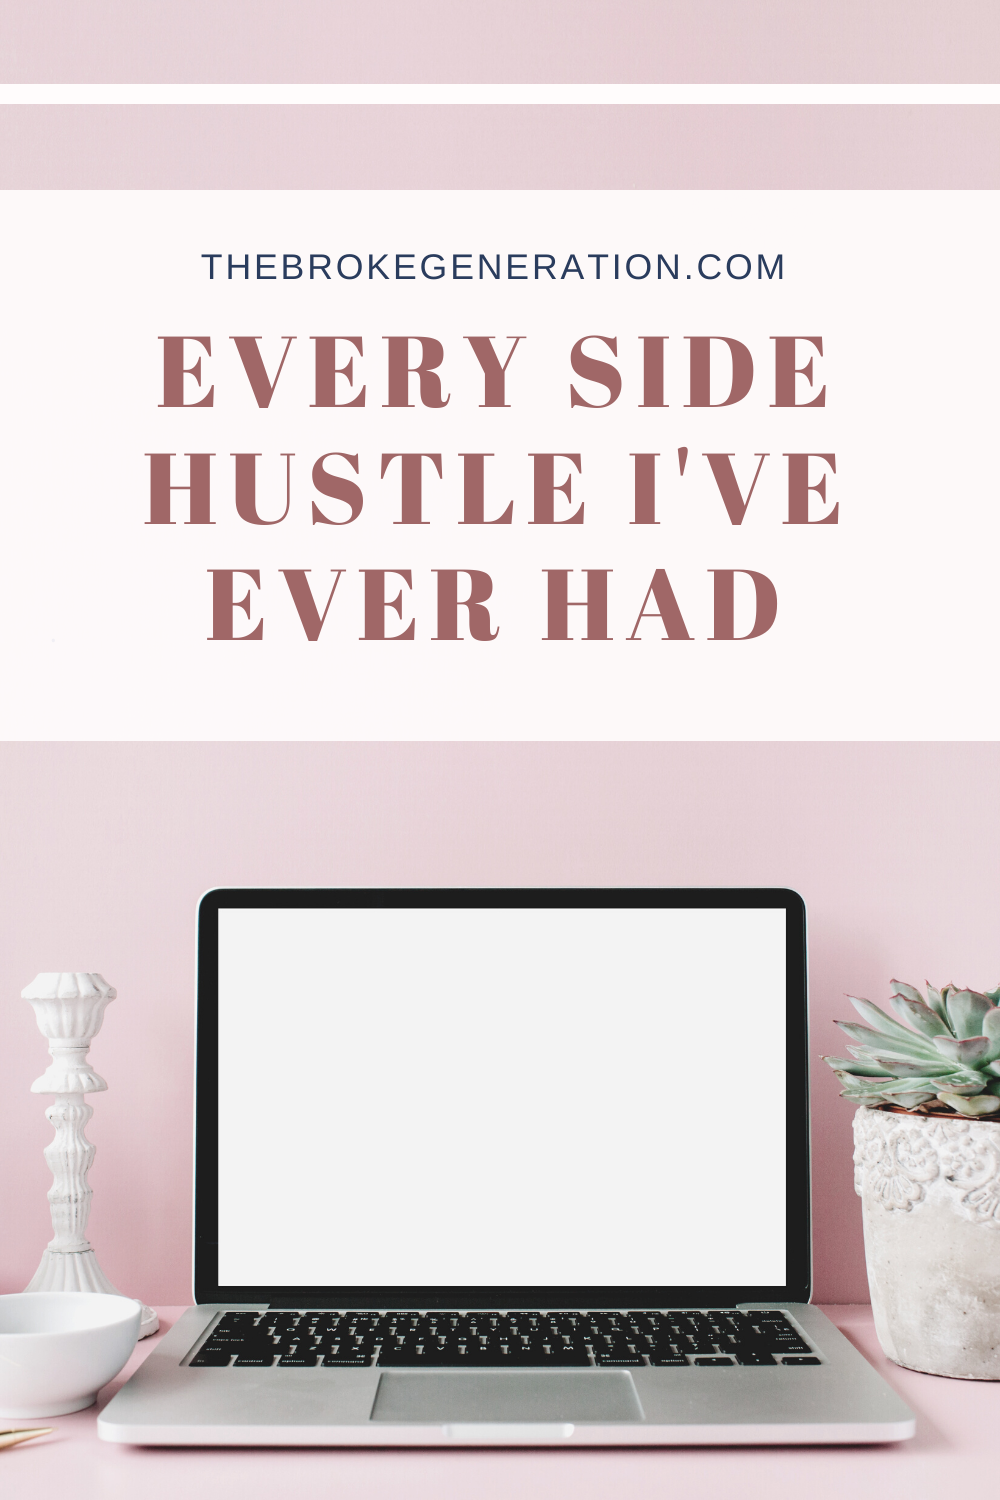 Every Side Hustle I've Ever Had